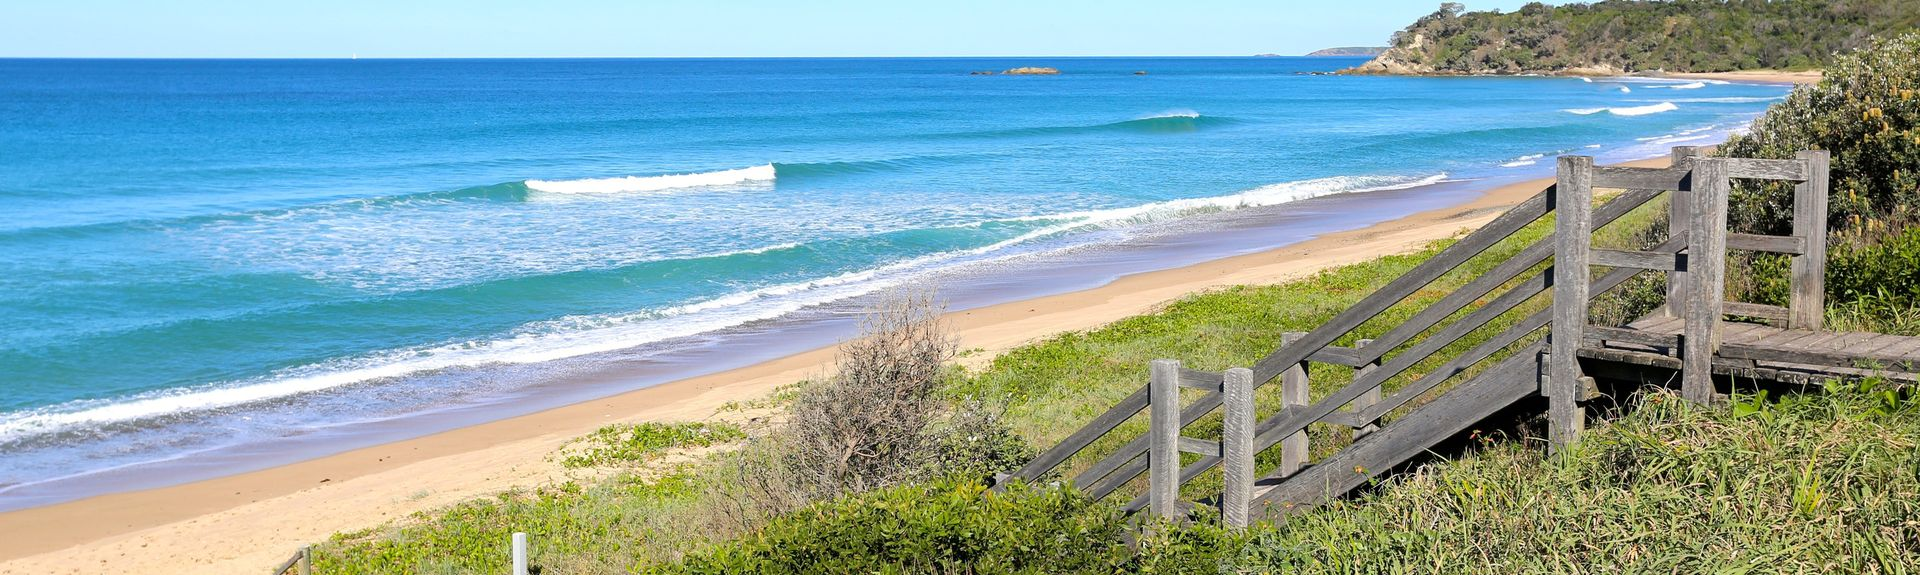 Blueys Beach, New South Wales, Australien